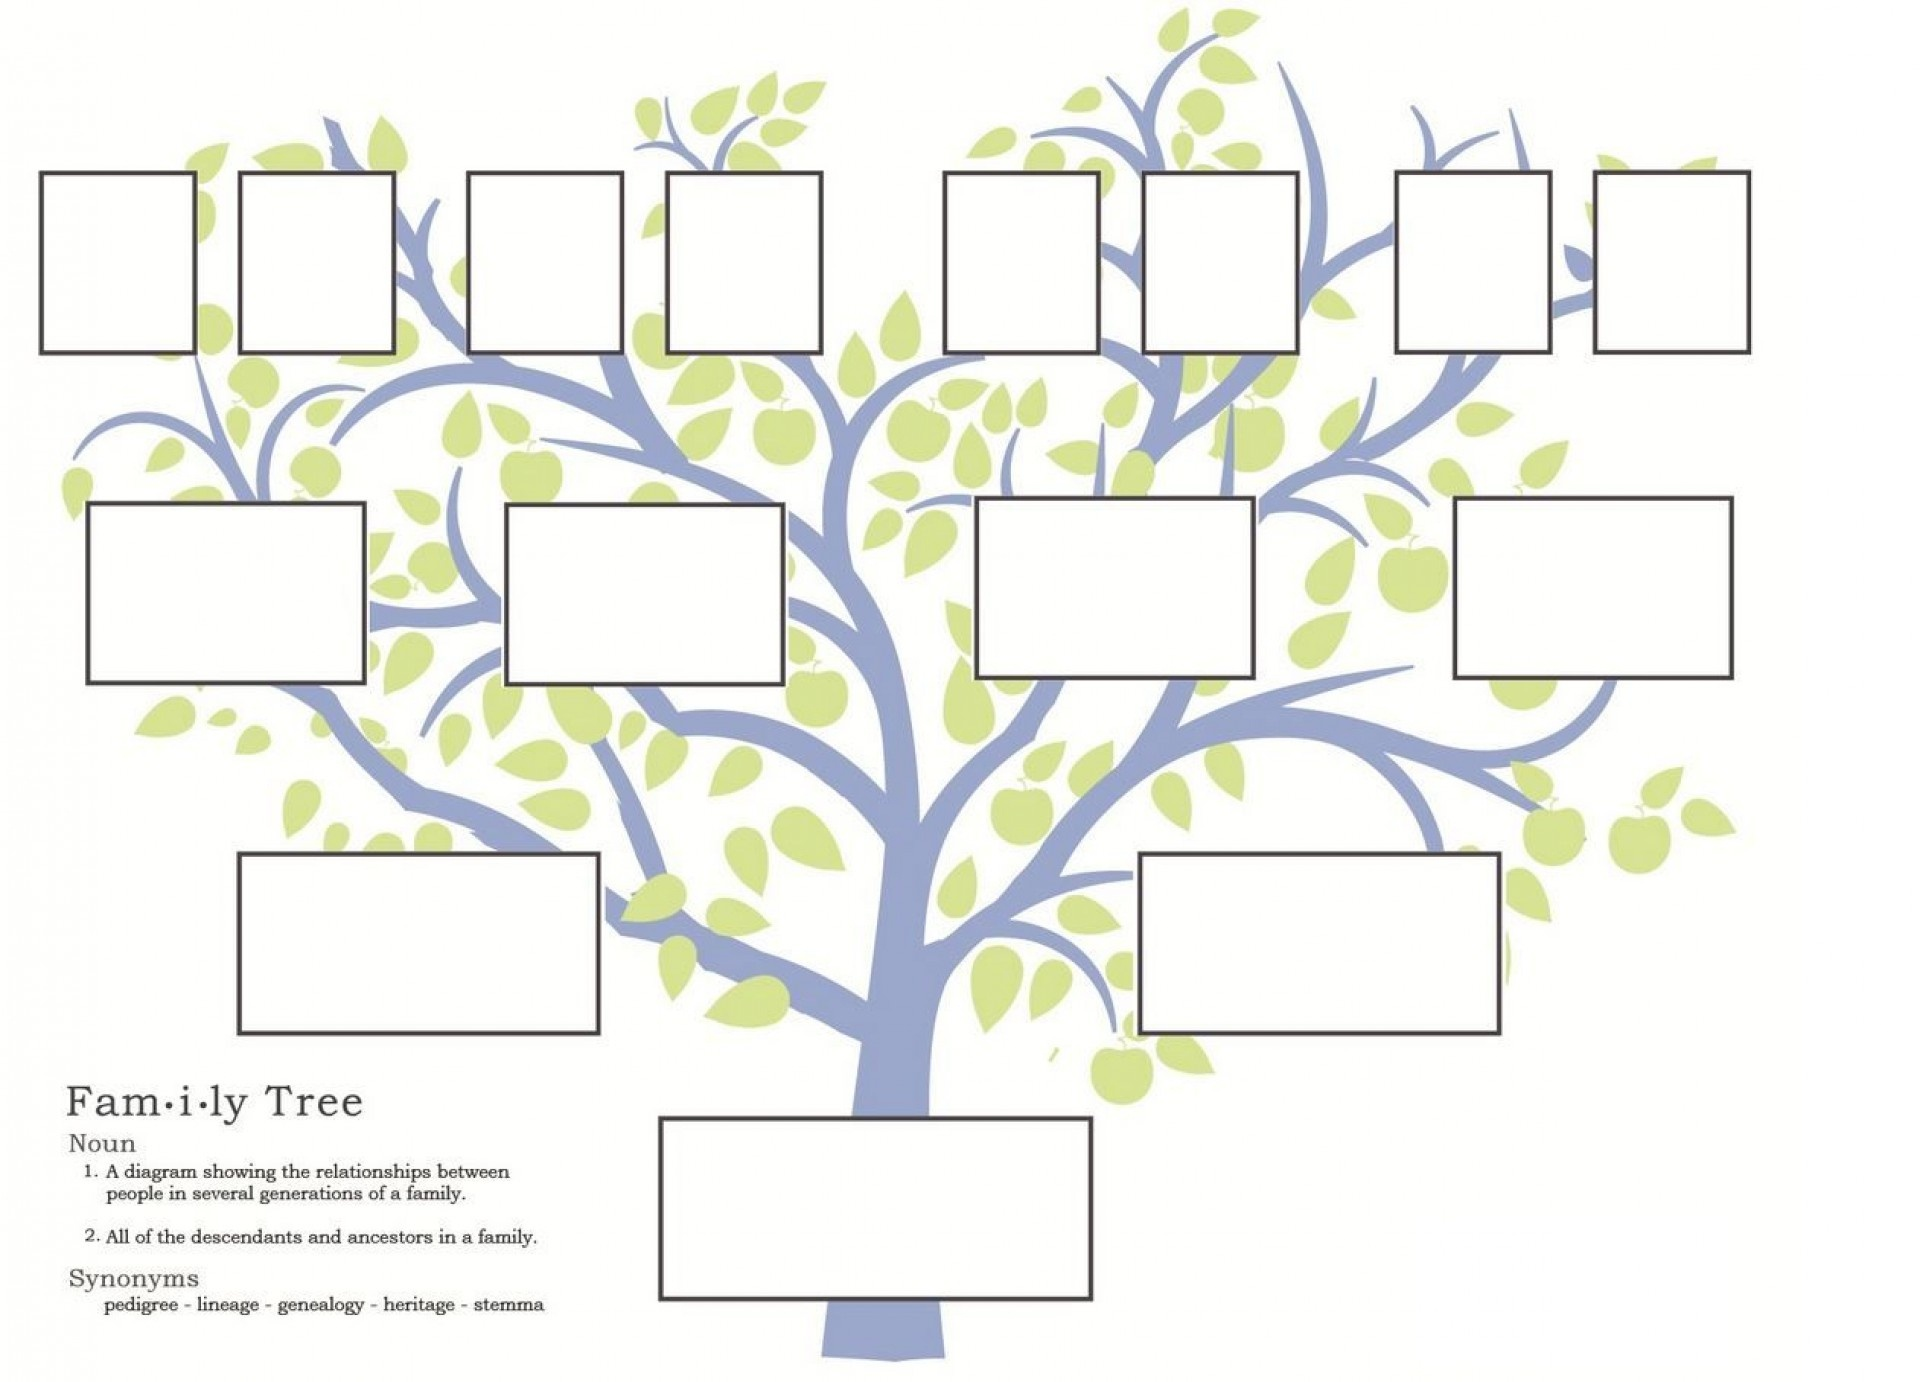 008 Family Tree Maker Free Template Excellent Ideas Online Download - Family Tree Maker Online Free Printable